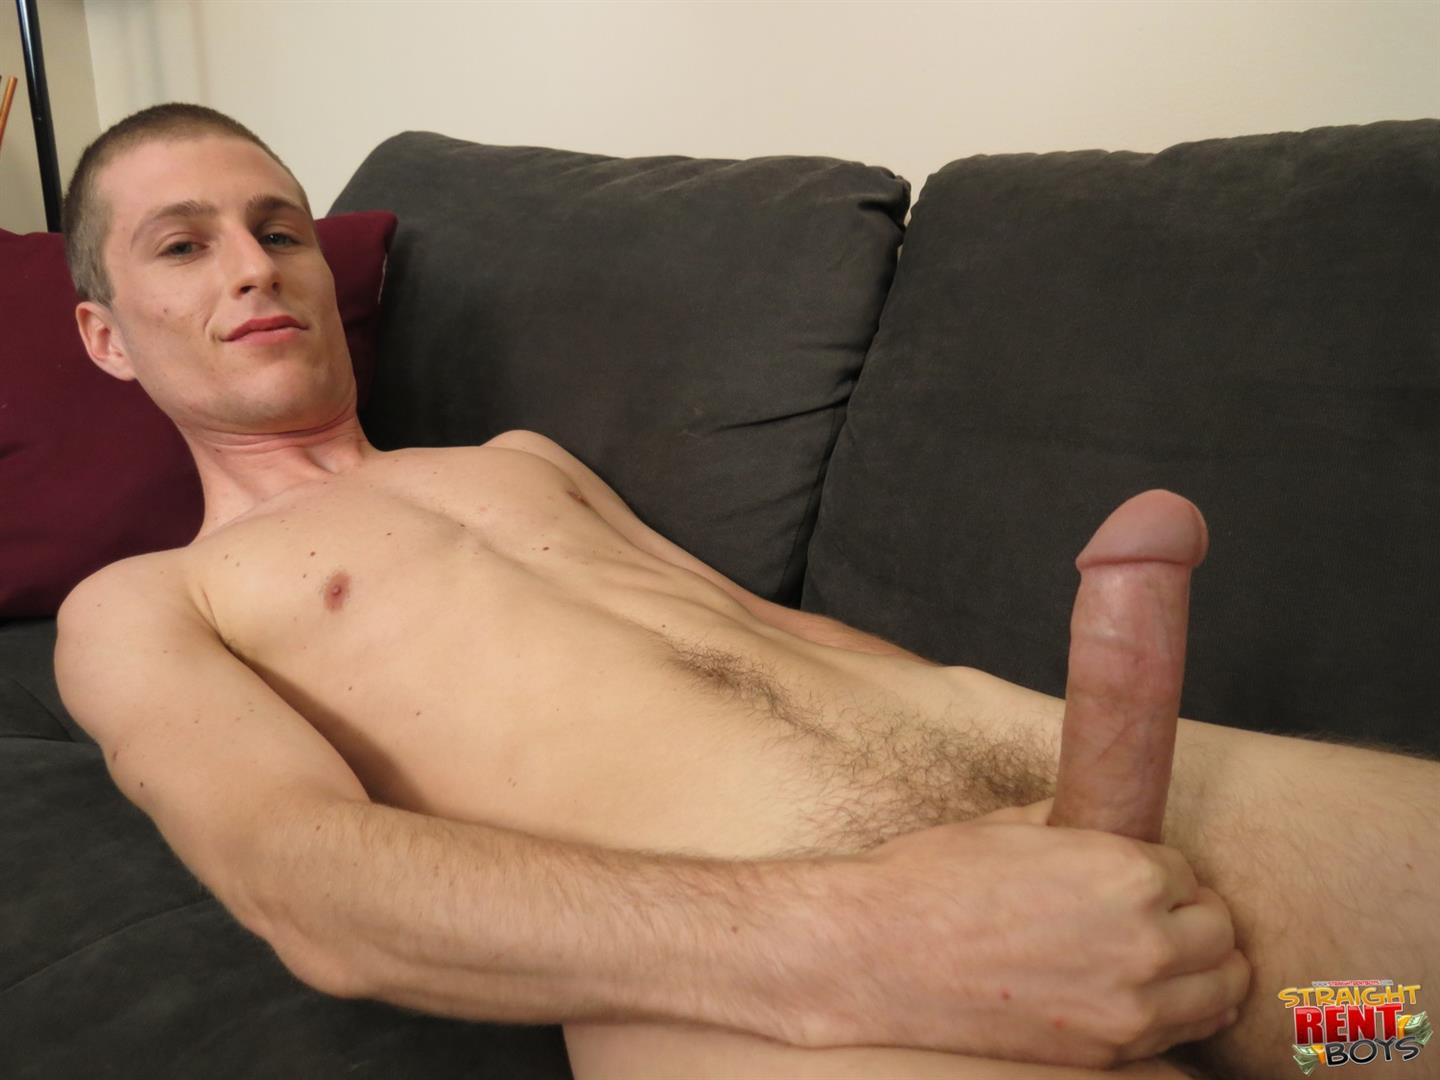 Staight Rent Boys Jacob Griffin Skinny Straight Twink With A Big Cock Amateur Gay Porn 16 Amateur Straight Skinny Twink Jerking Off His Big Cock